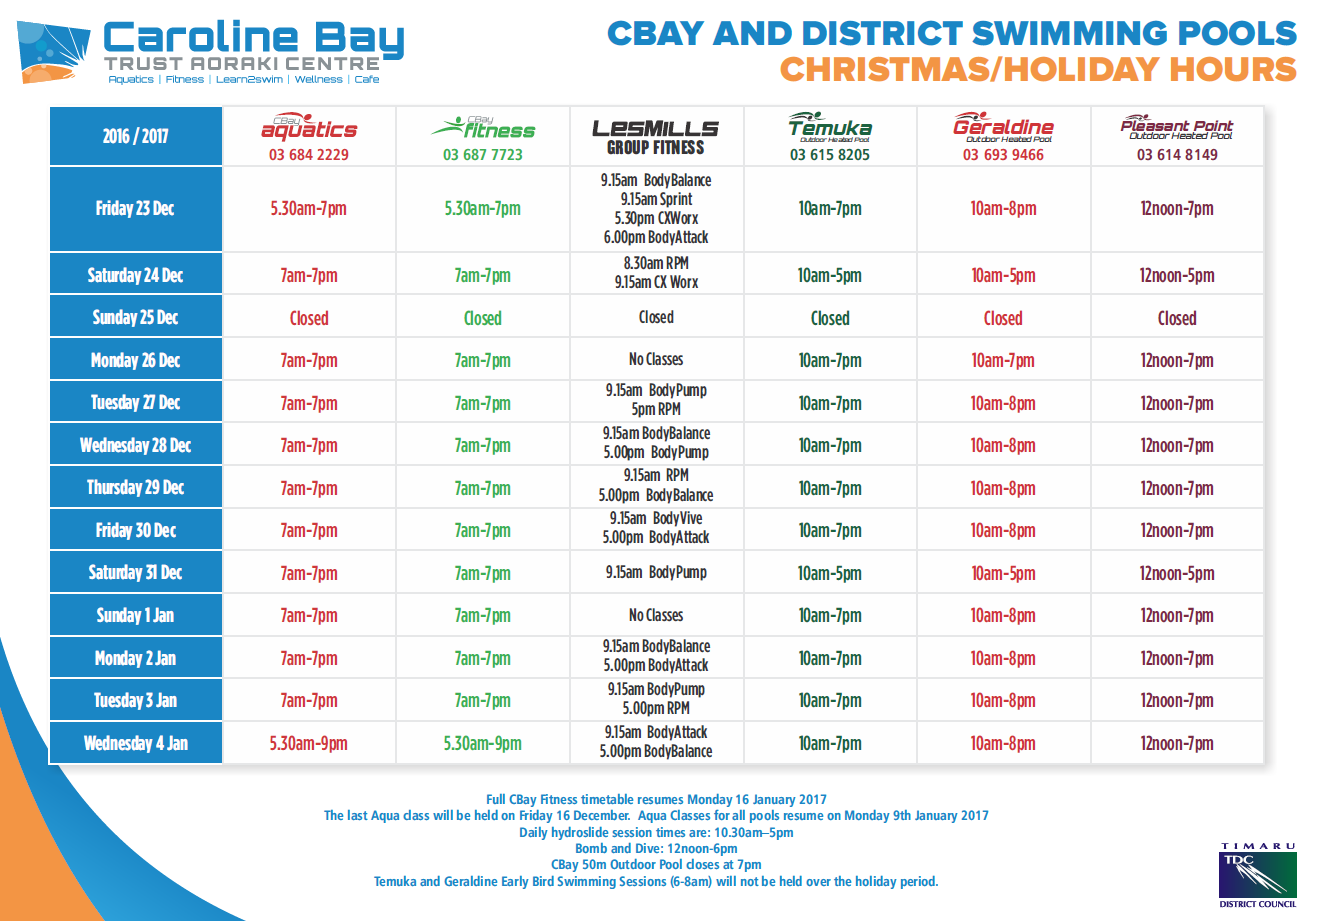 Christmas new year holiday hours caroline bay pool Canterbury swimming pool opening hours